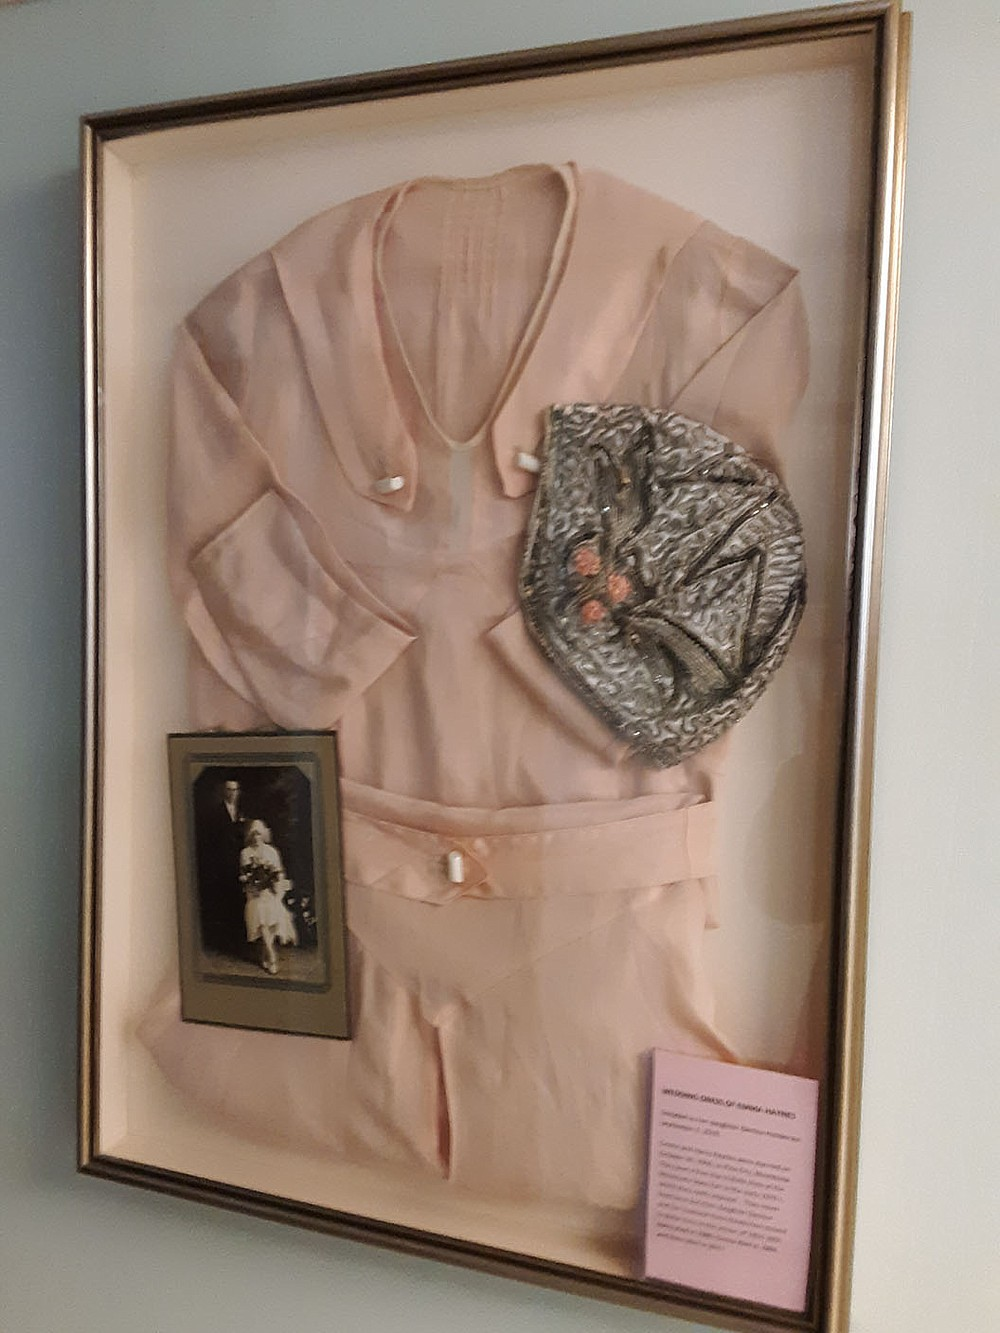 This is the dress worn by the bride when Emma and Harry Haynes were married Oct. 30, 1930, in Pine City, Minn. They visited Bella Vista in the 1970s, having won a free trip at the Minnesota State Fair. The dress was donated to the Bella Vista Historical Museum by daughter Glenice Henderson.  (Courtesy image)